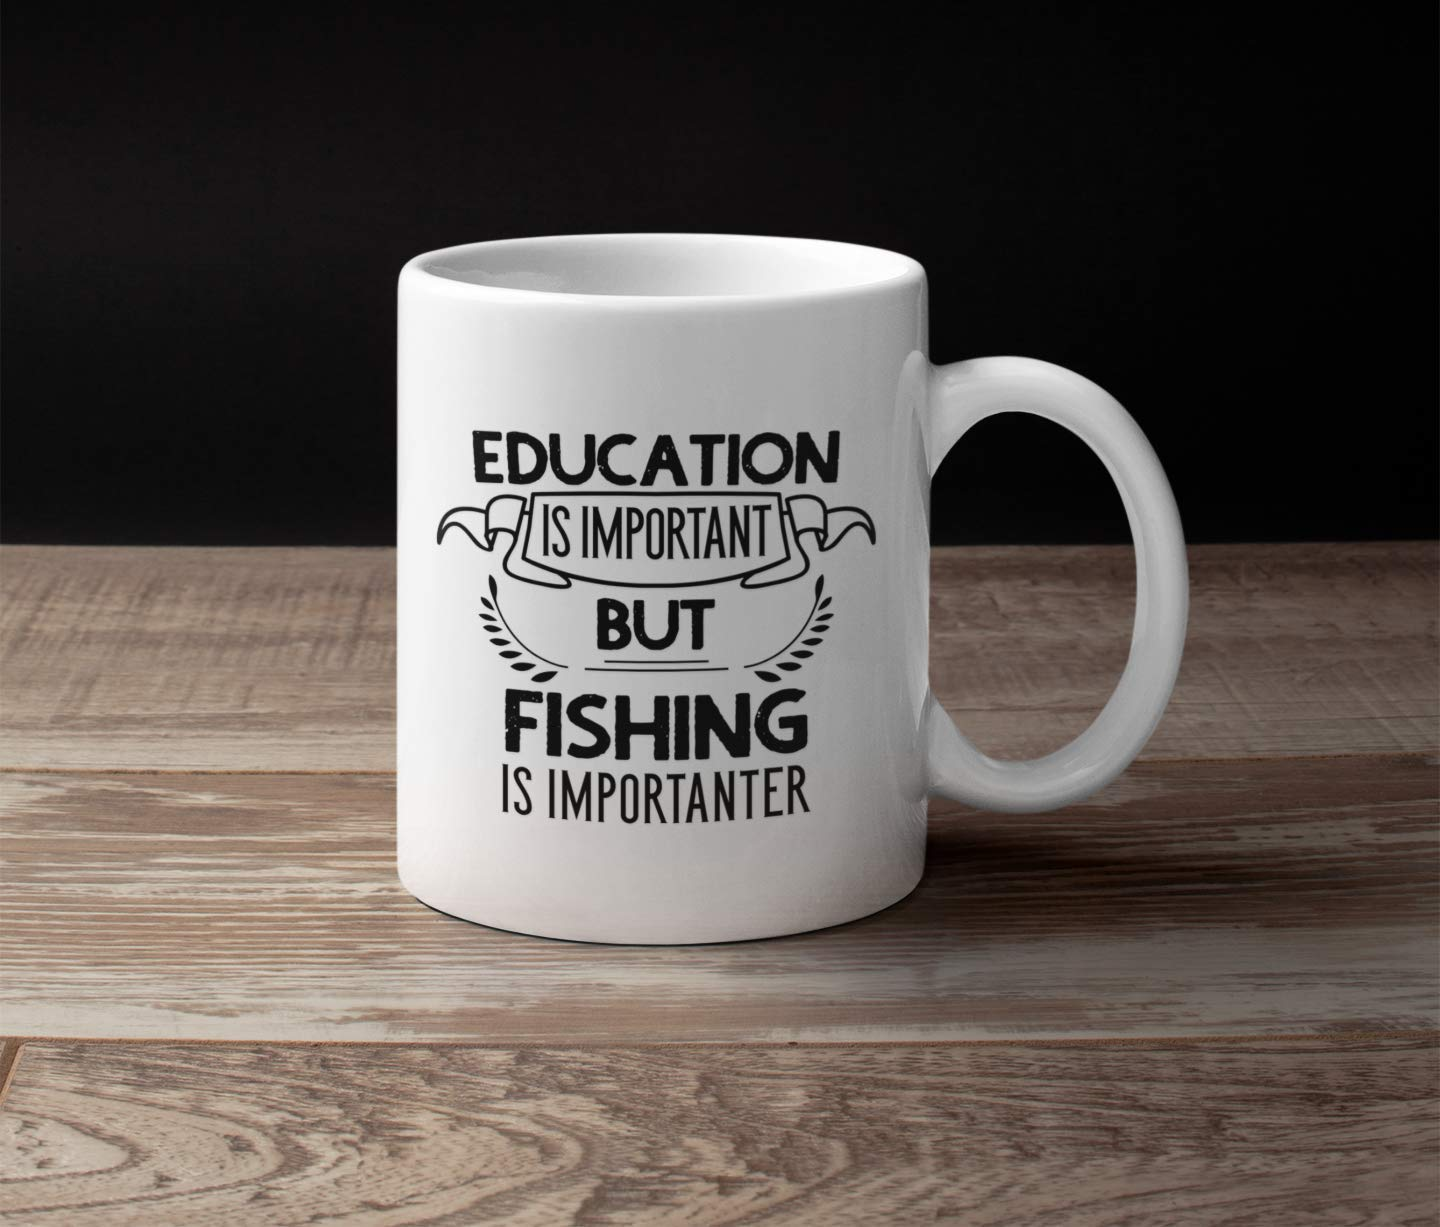 Funny Fishing Gifts Novelty Fishing Gift idea for Fisherman or Retirement. Education Is Important But Fishing Is Importanter 11 oz Coffee Mug for Dad or Grandpa